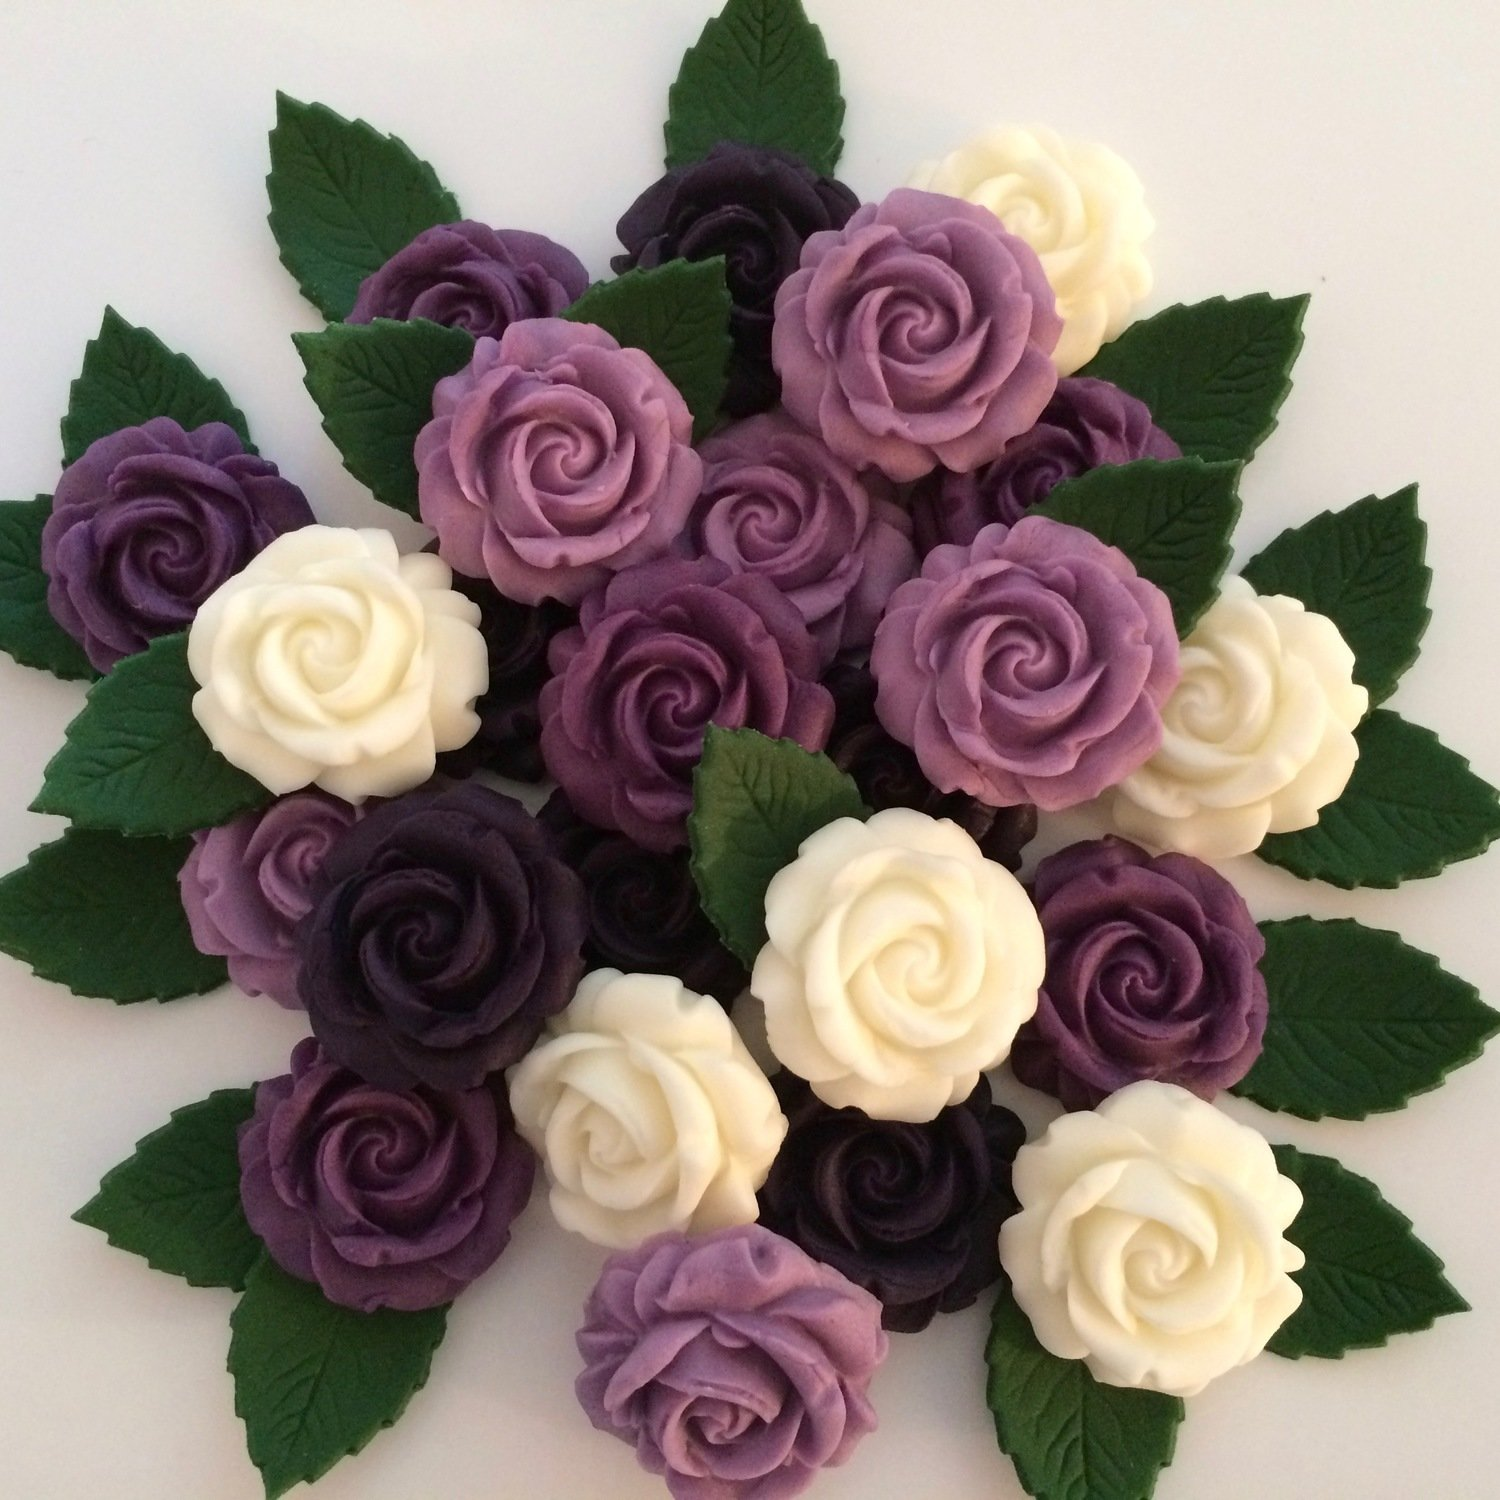 Purple Roses with Leaves